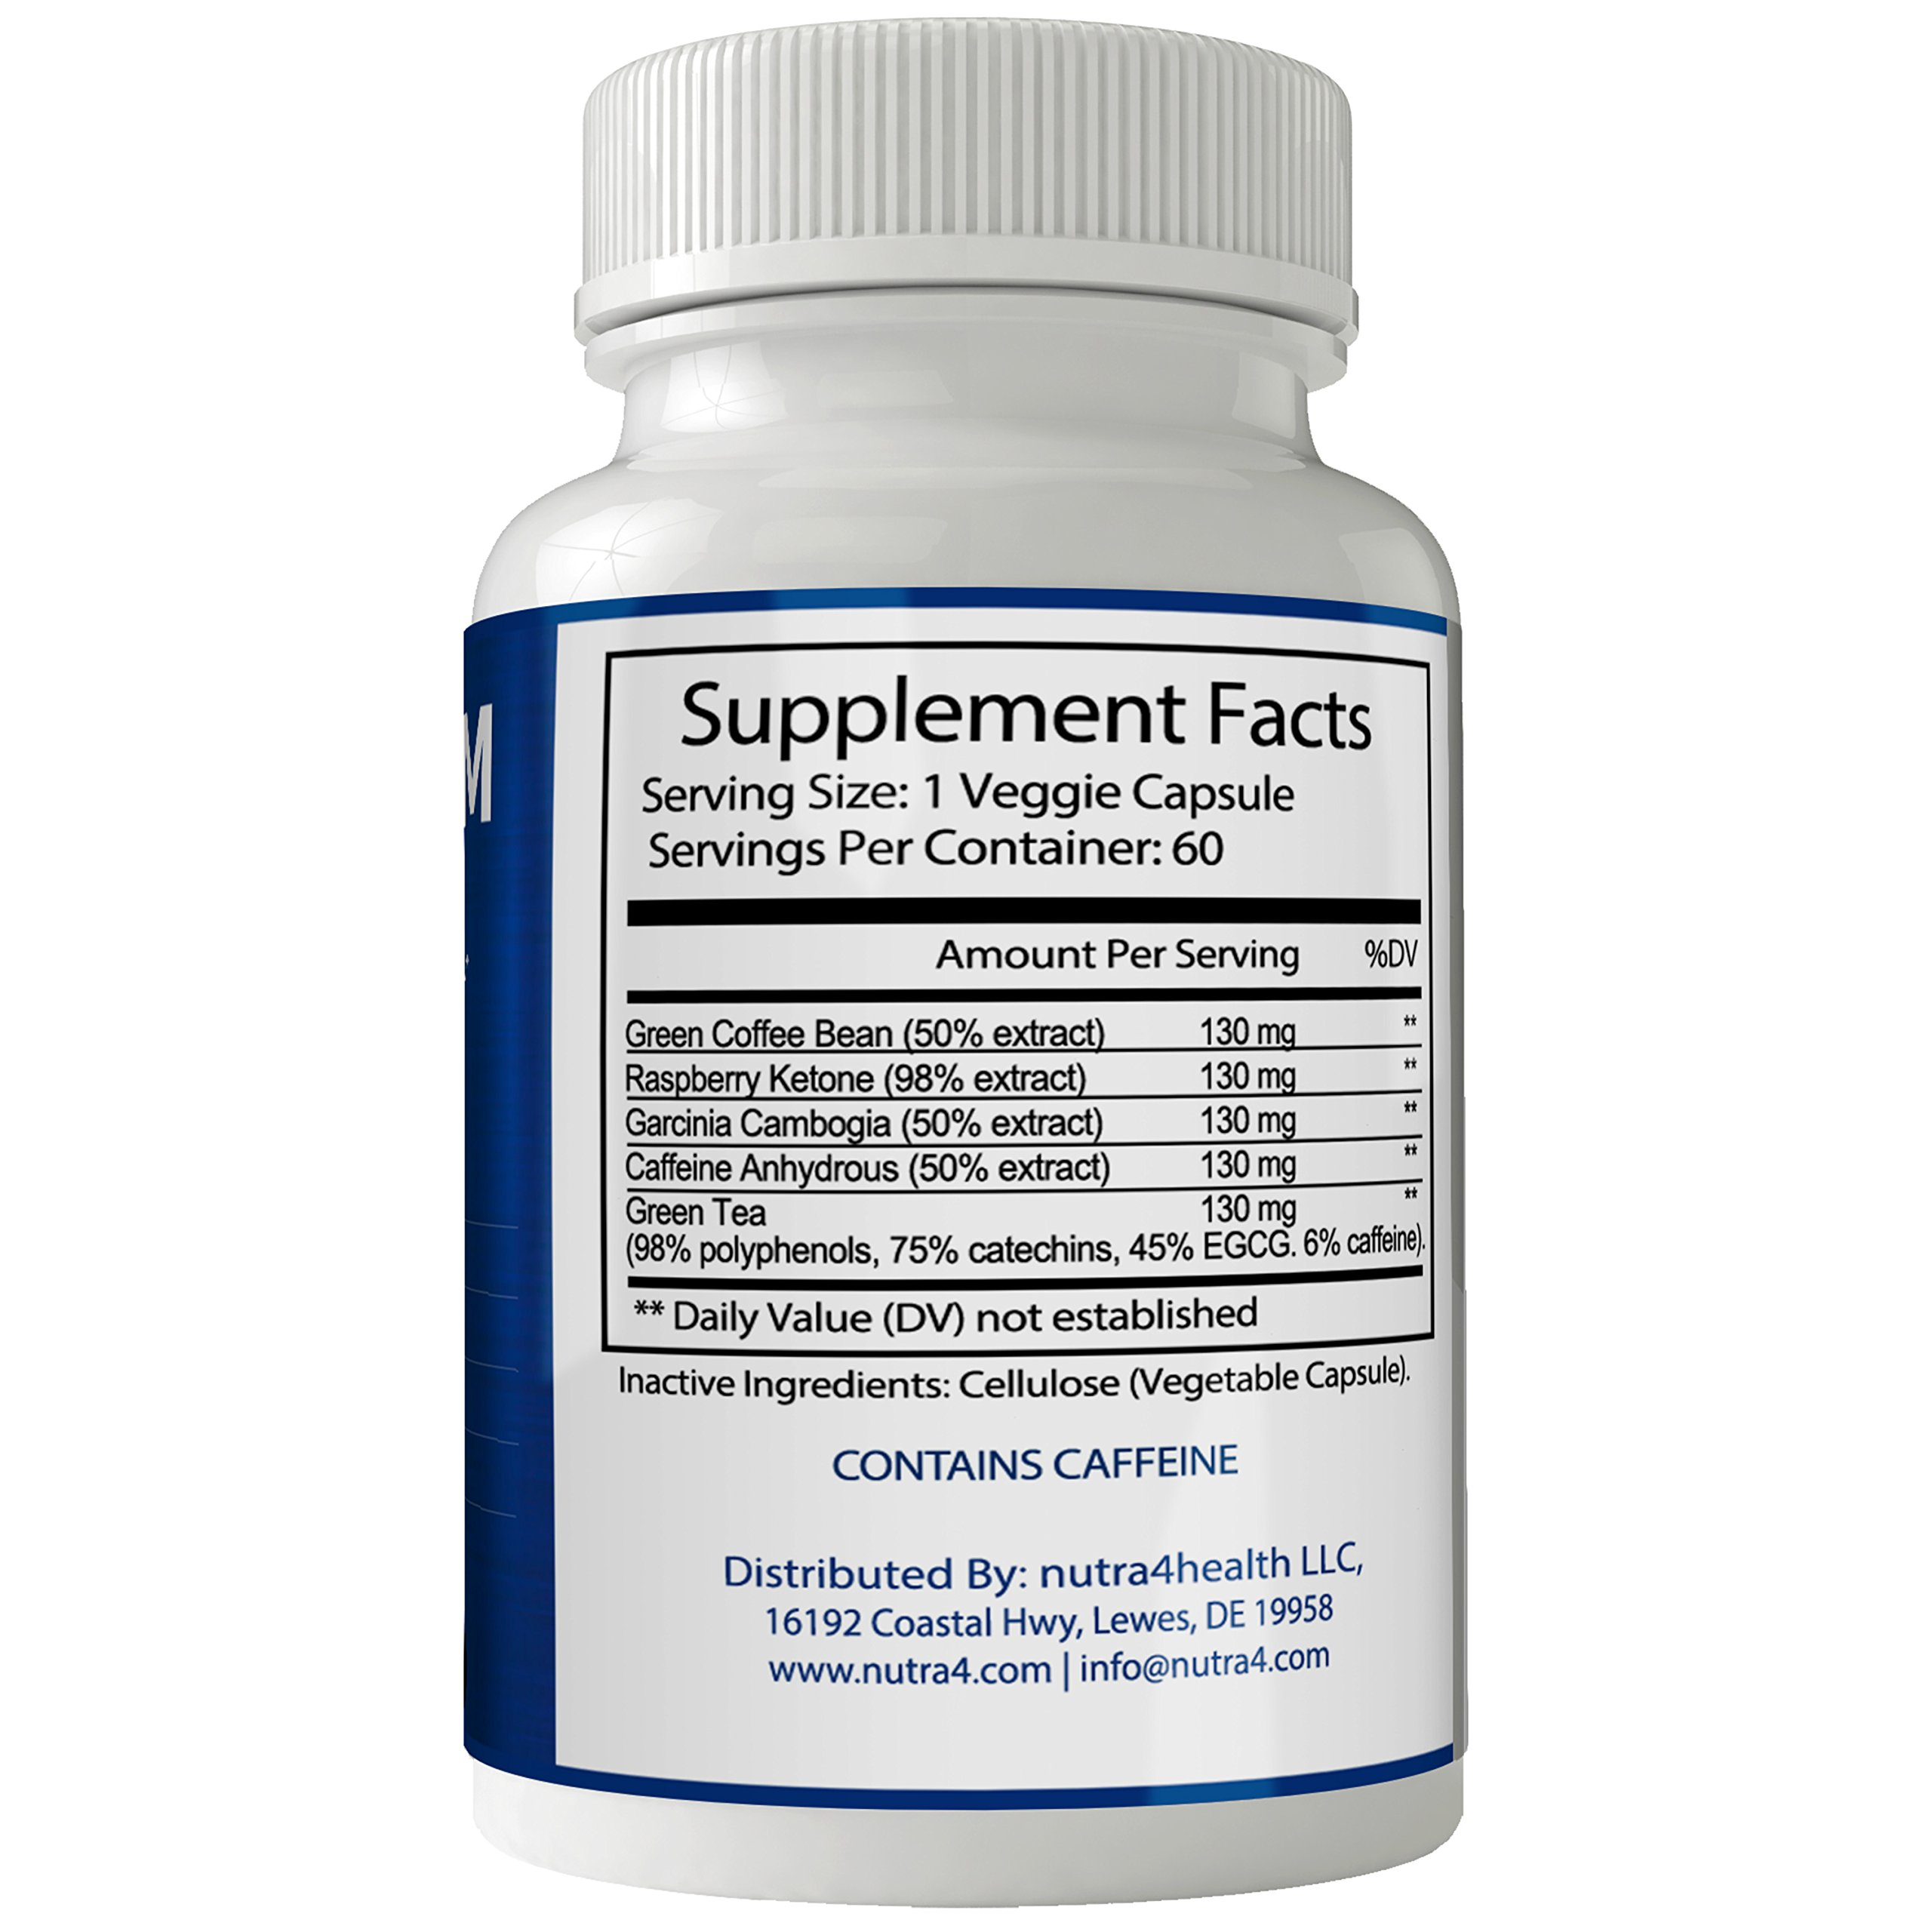 Keto Trim Advanced Weight Loss Supplement, Extreme Weightloss Lean Fat Burner | Advanced Thermogenic Fat Loss Formula Pills for Women Men Natural Weight Loss Pastillas Original by nutra4health Brand … by nutra4health LLC (Image #2)